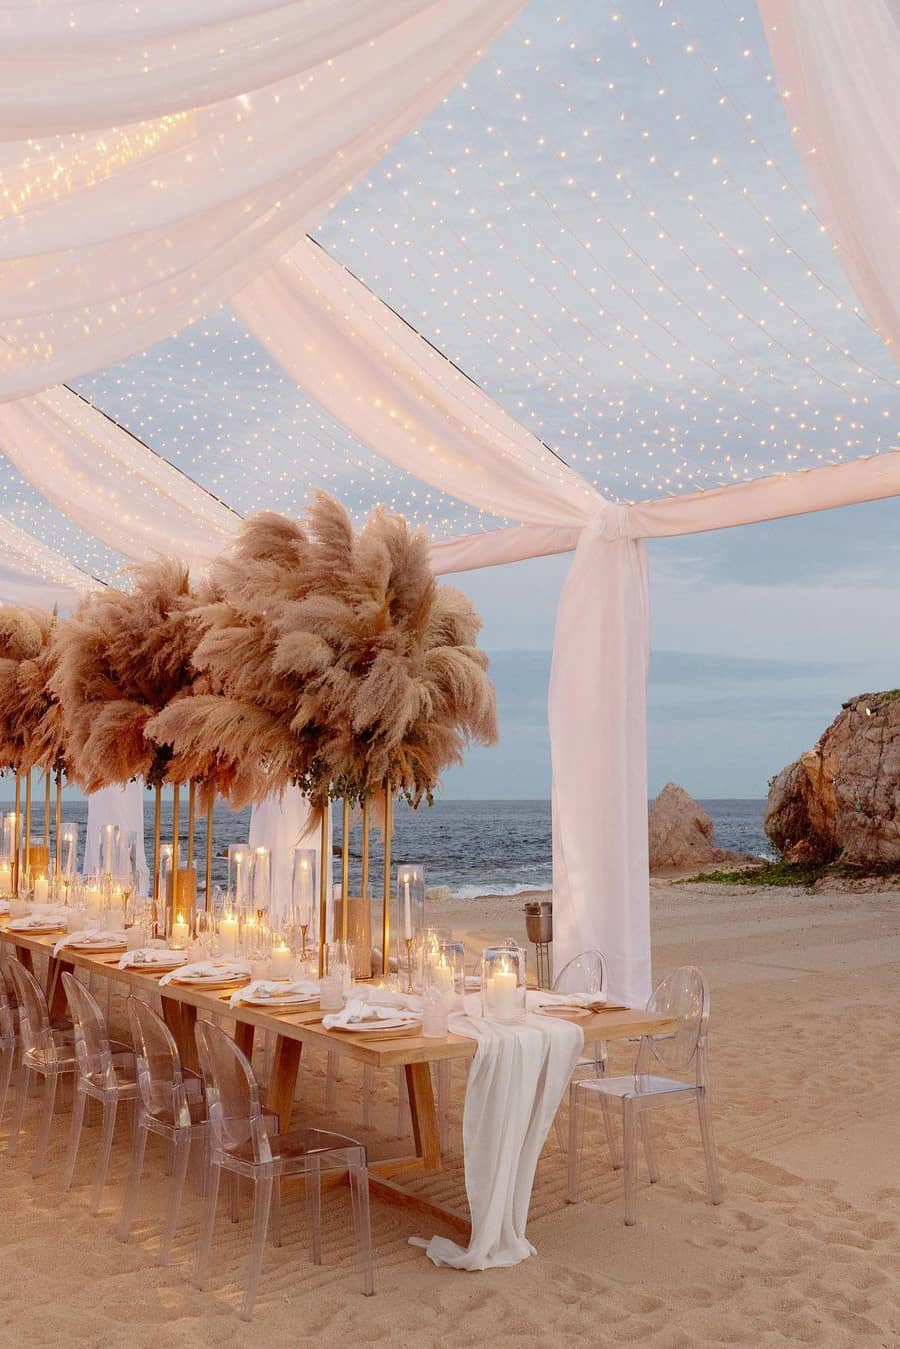 Amazing beach wedding decoration